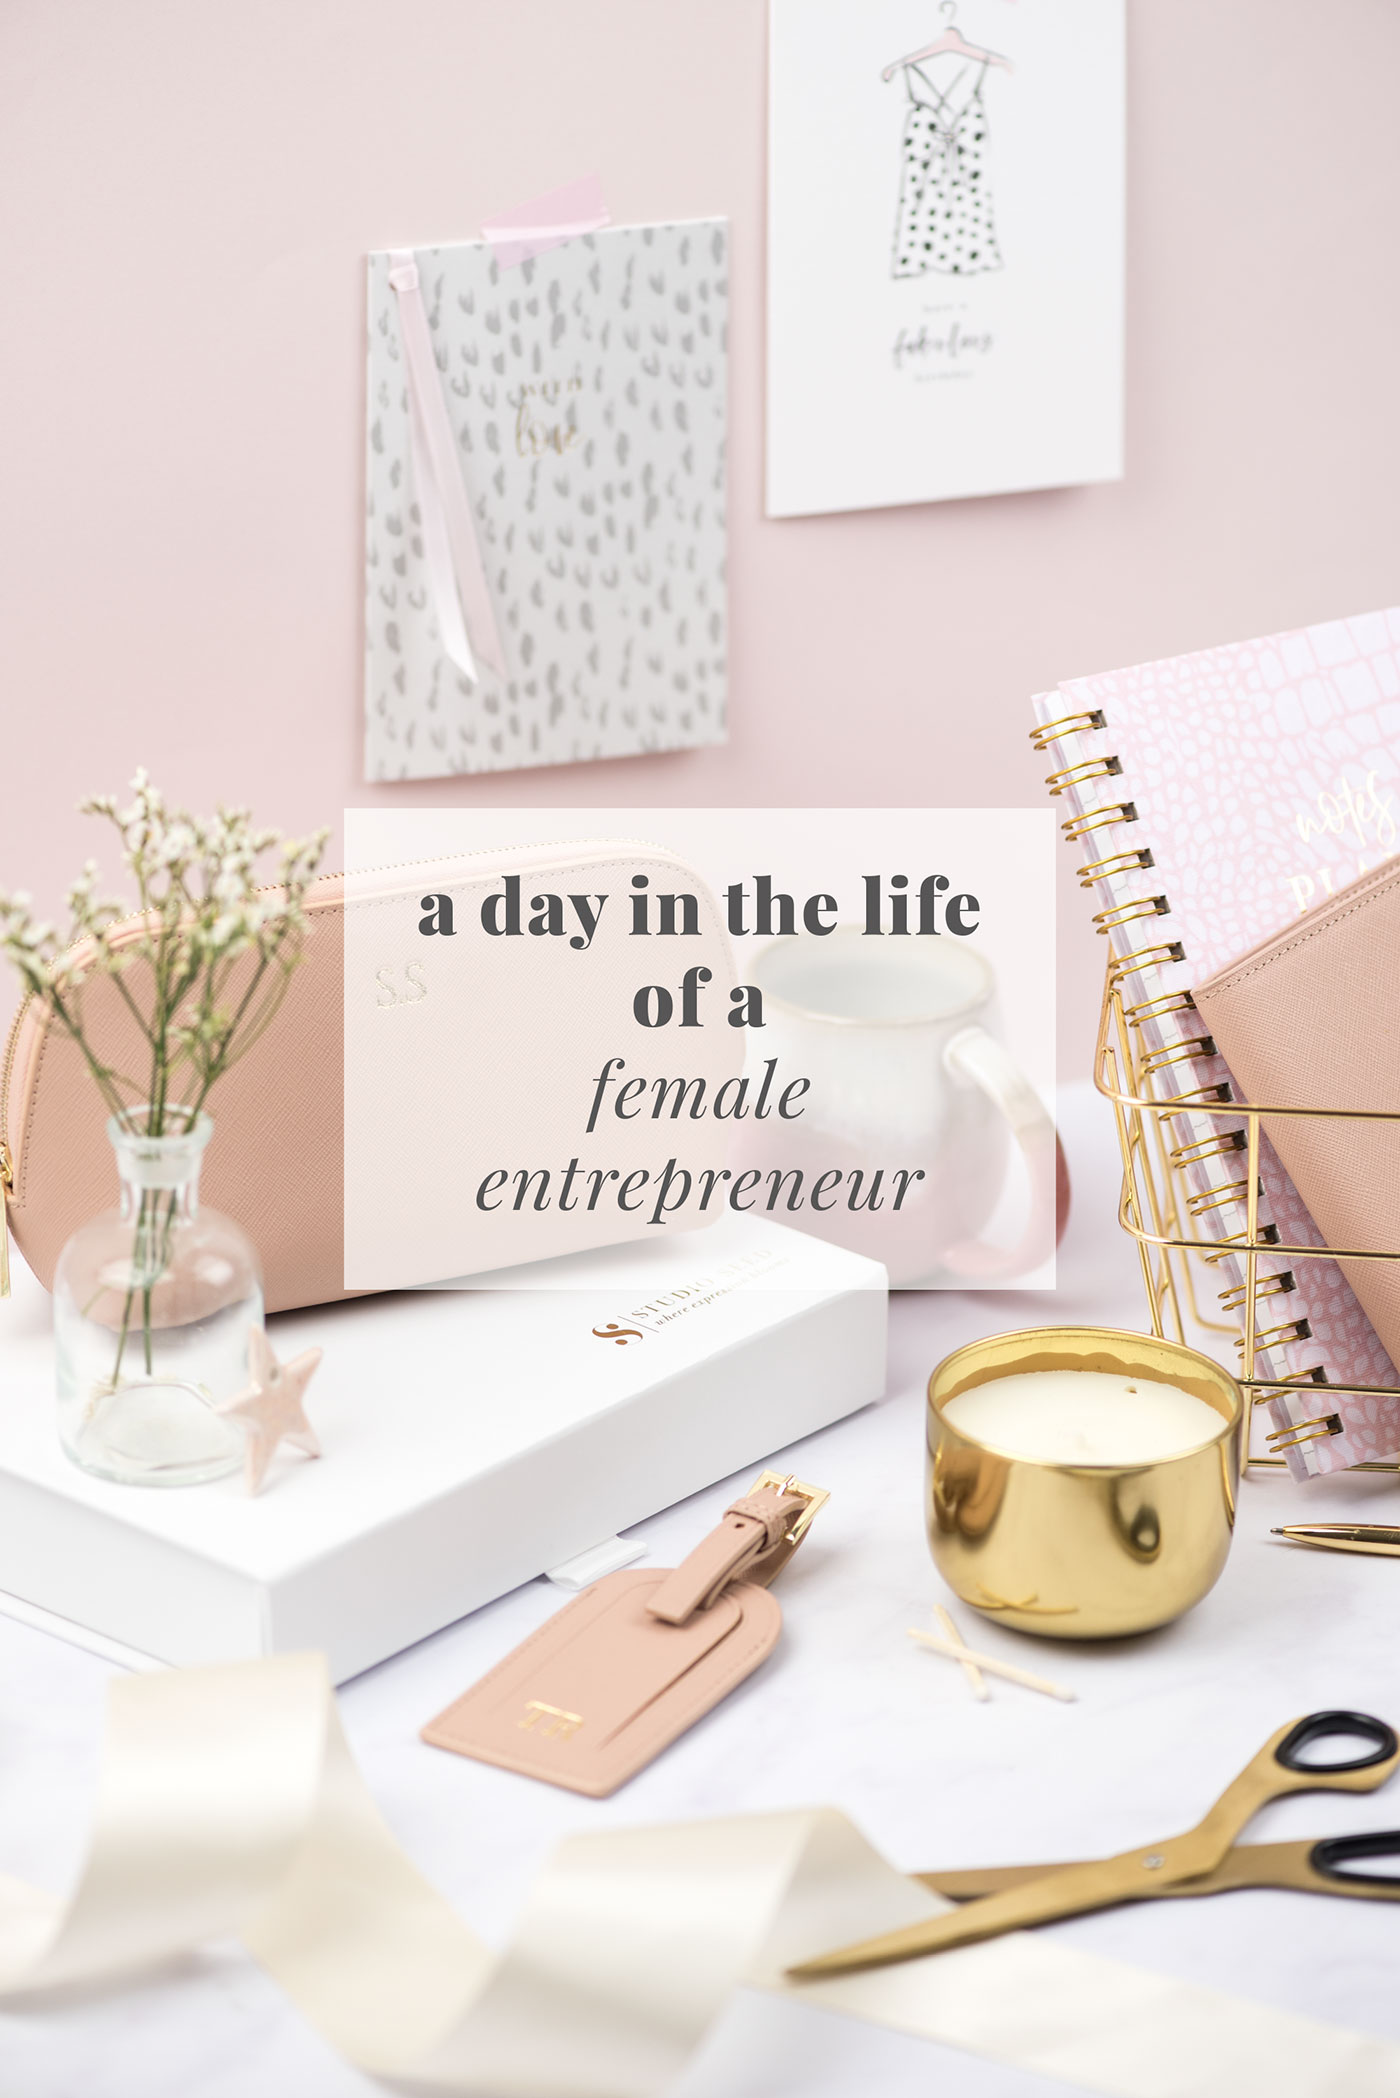 A-day-in-the-life-of-a-female-a-day-in-the-life-of-a-female-entrepreneur.jpg